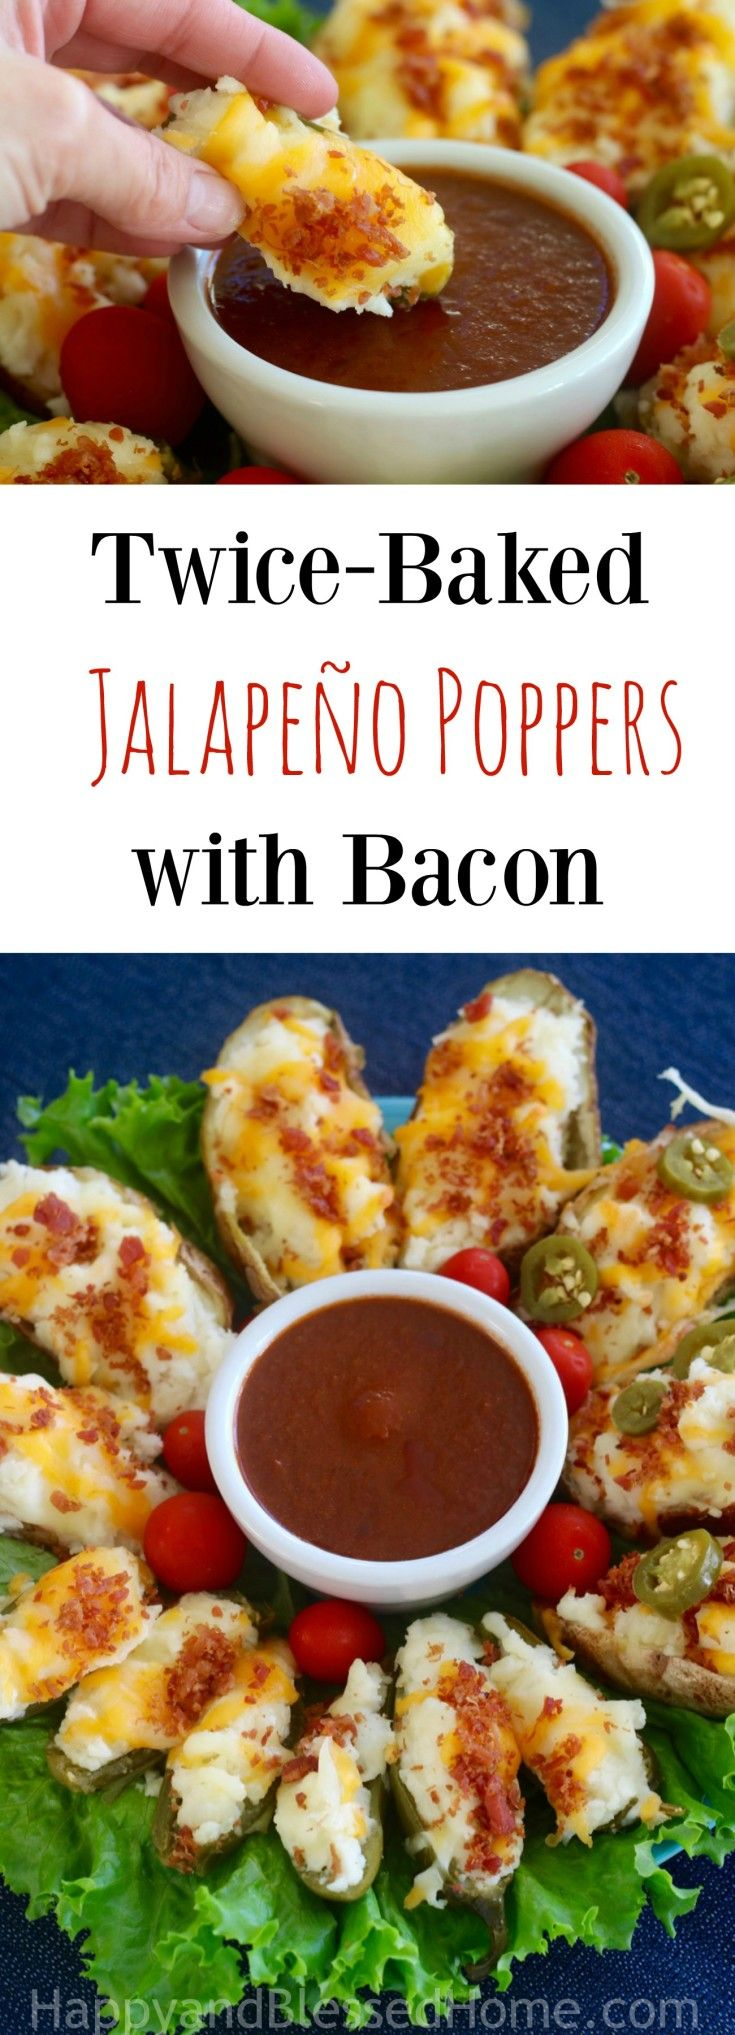 Easy Appetizer Recipe for Twice-Baked Jalapeño Poppers with Bacon ...